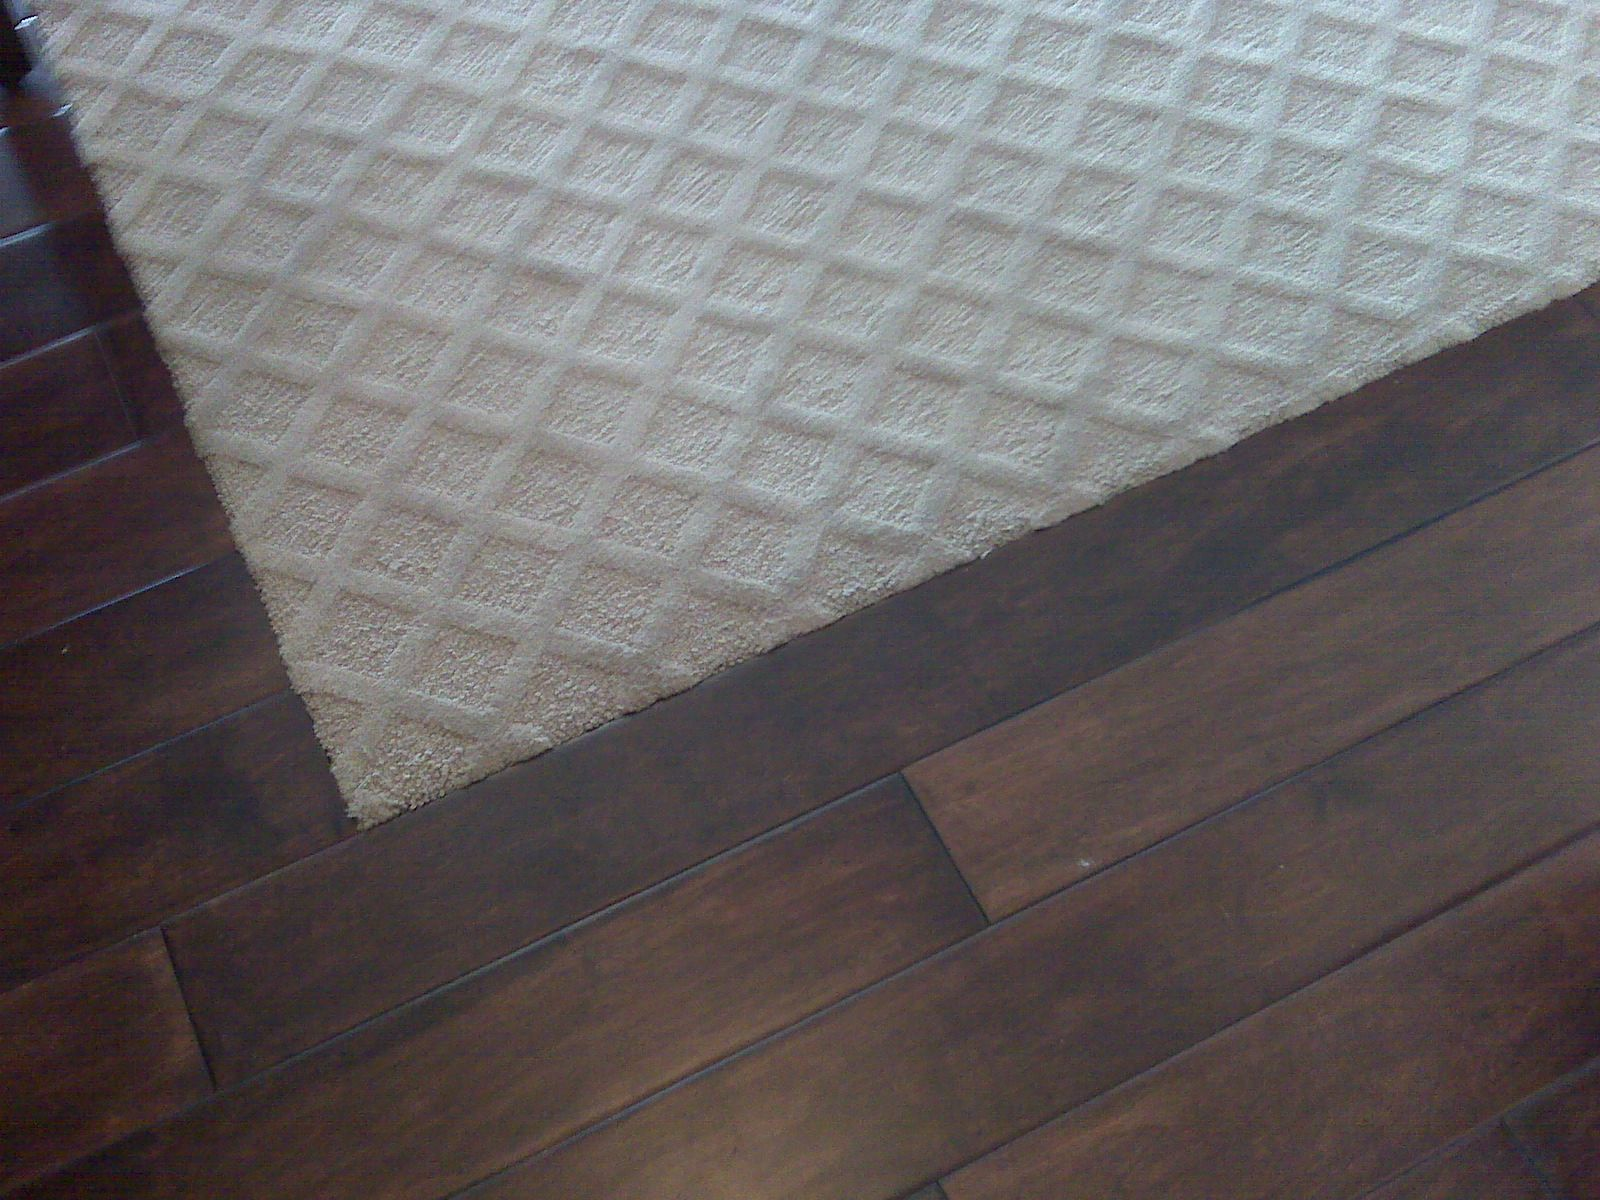 Carpet Inset In Wood Flooring For The Upstairs Bedrooms I